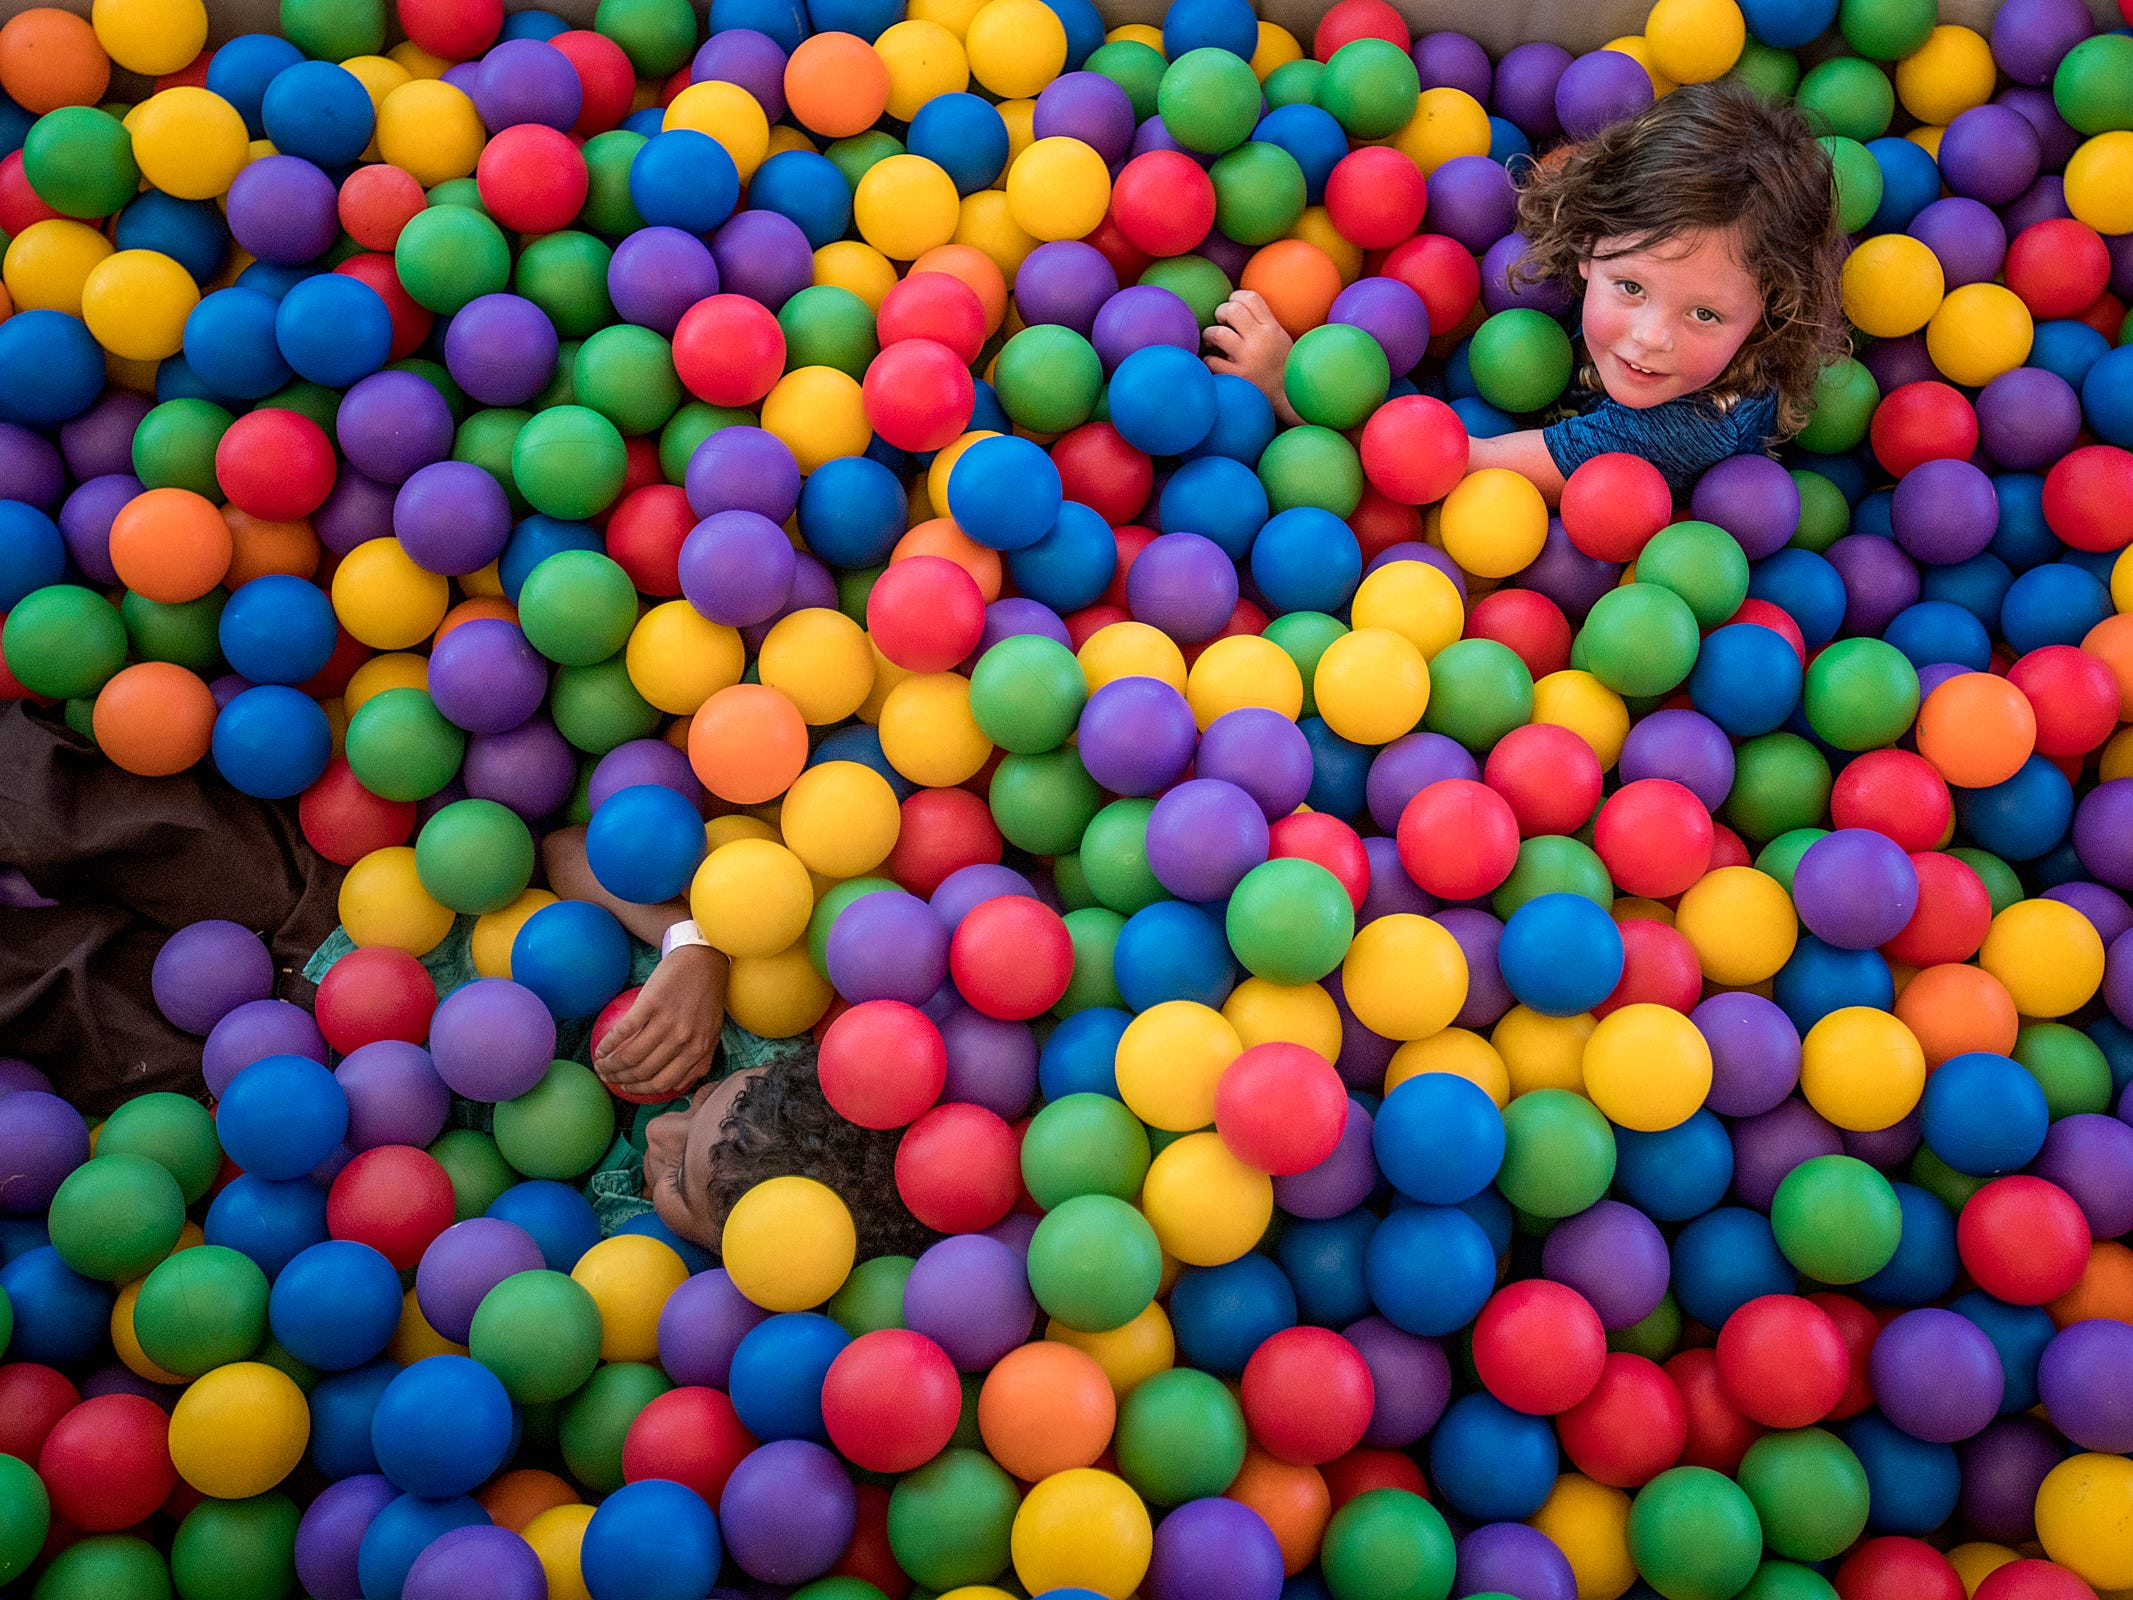 Children swim around in a ball pit, part of the Big Bounce America inflatable attraction at Waterman's Family Farm in Indianapolis, Friday, Sept. 14, 2018. The world's largest bounce house covers 10,000 square feet and will be in Indy though September 16.